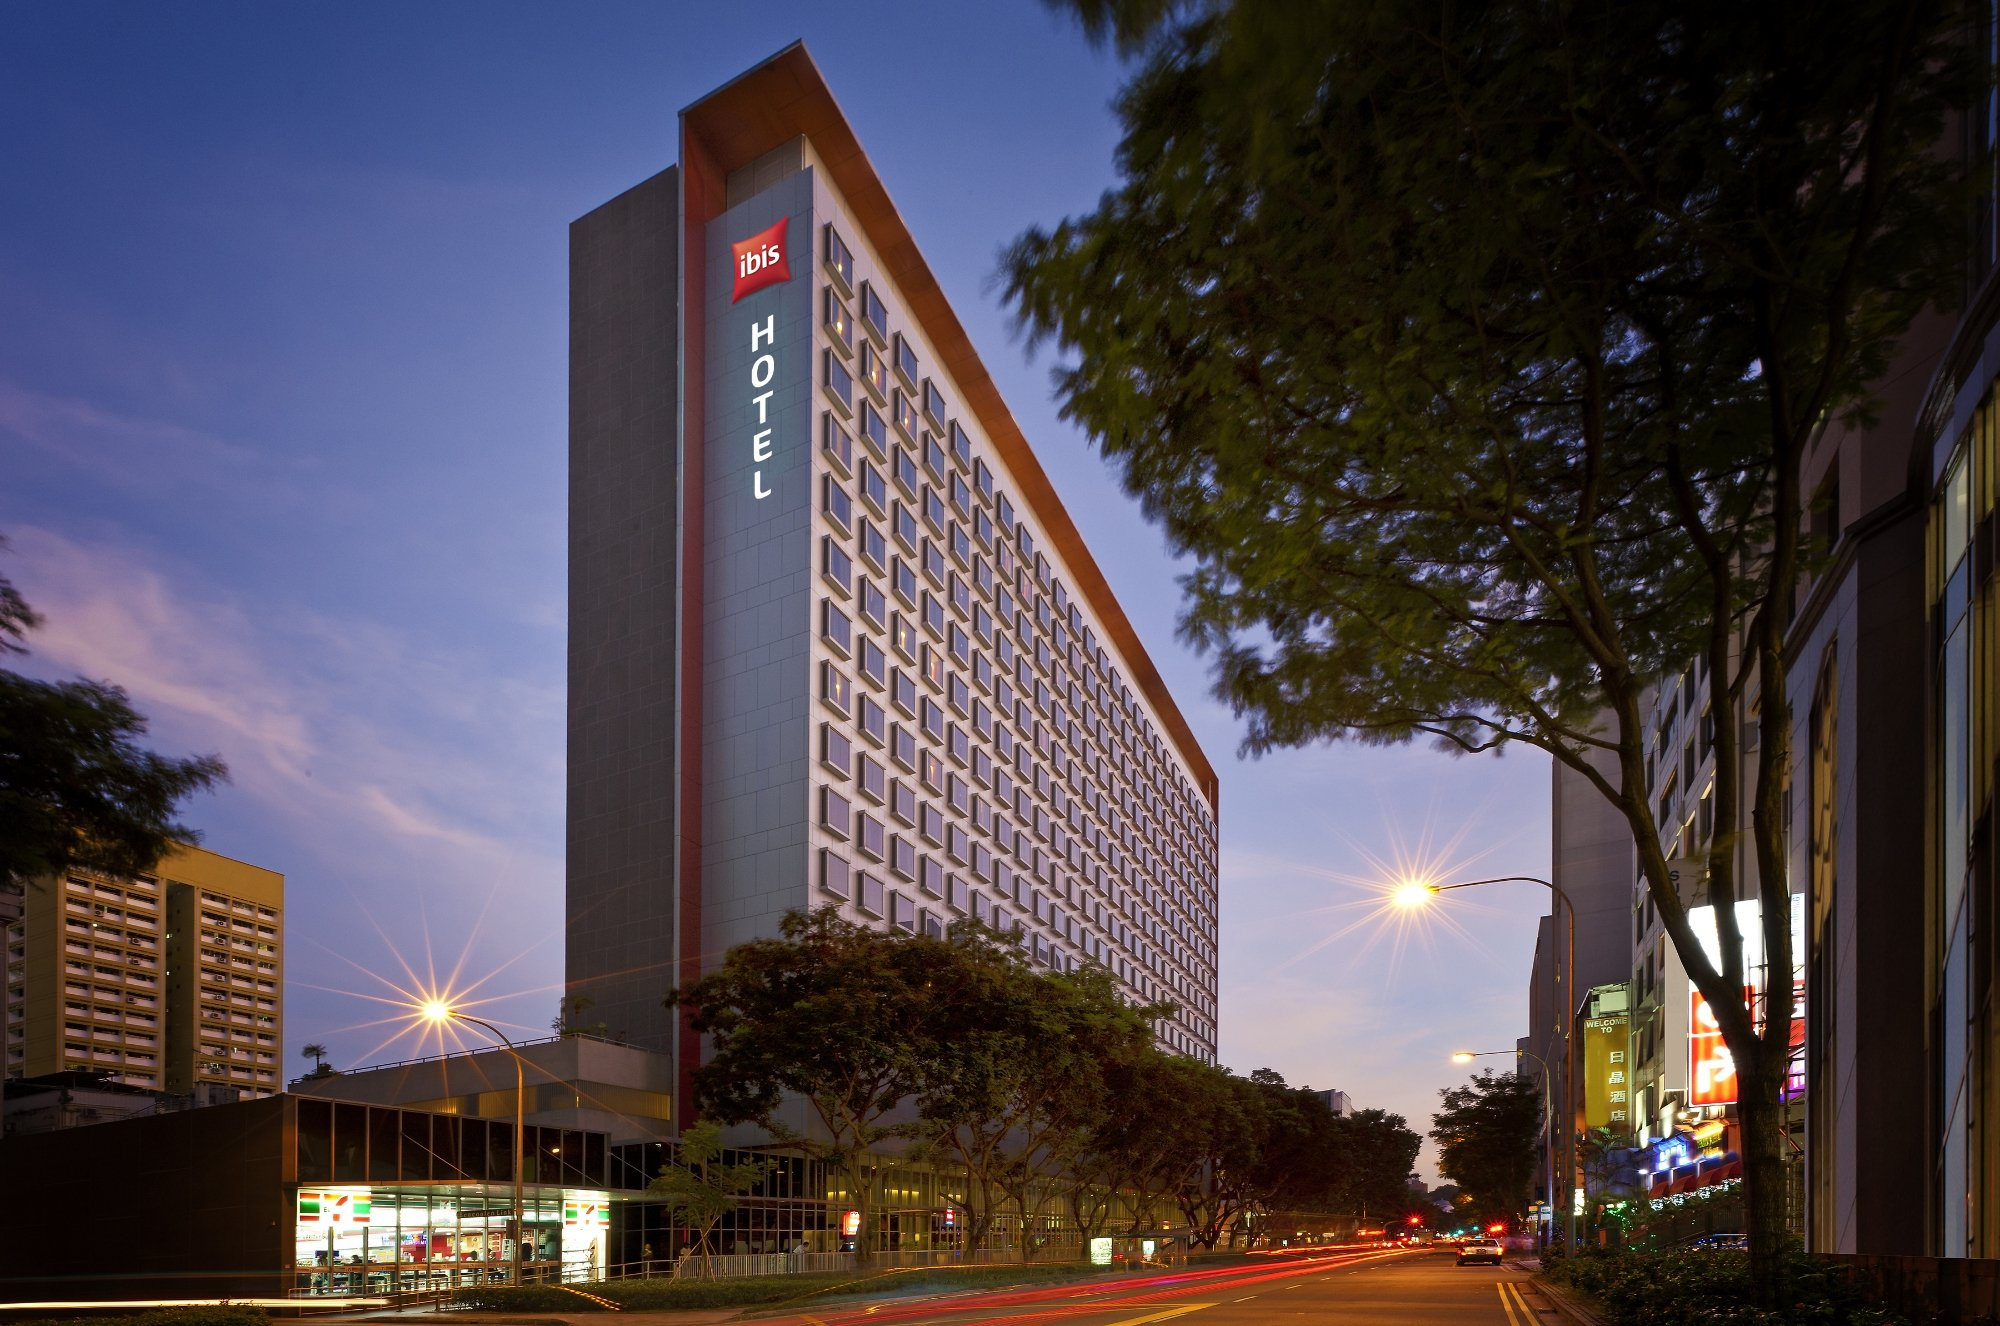 Ibis singapore on bencoolen updated 2017 prices hotel reviews tripadvisor